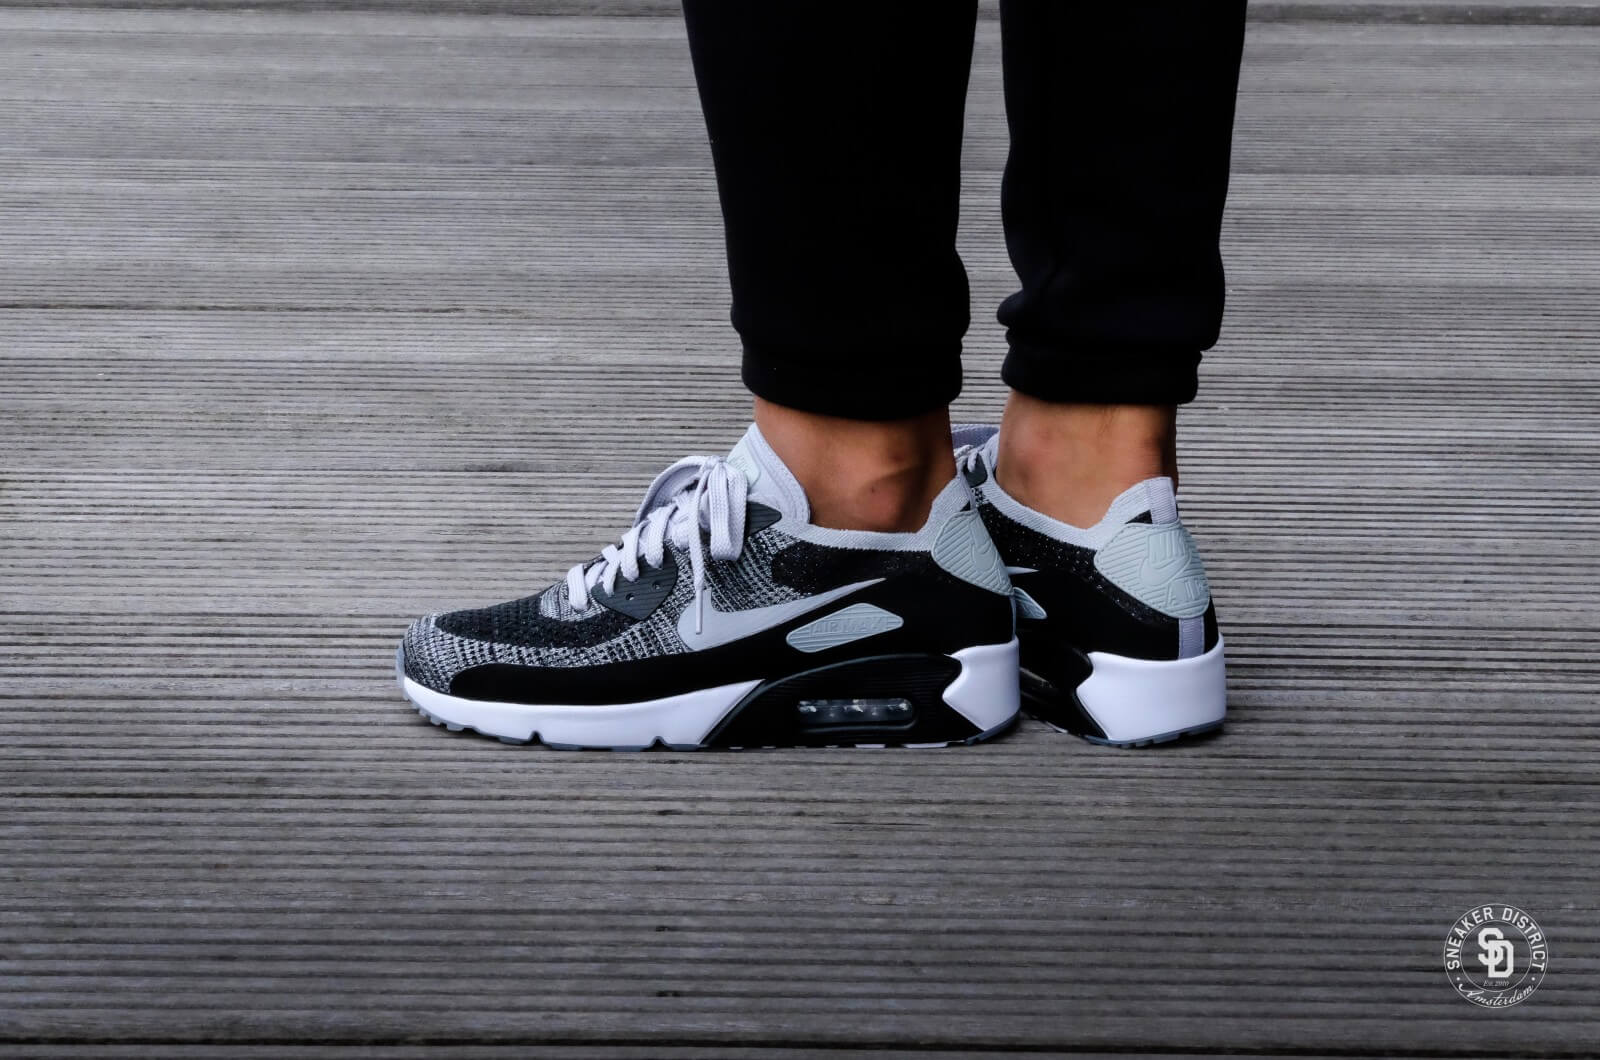 Nike Air Max 90 Ultra 2.0 Flyknit BlackWolf Grey White For Sale